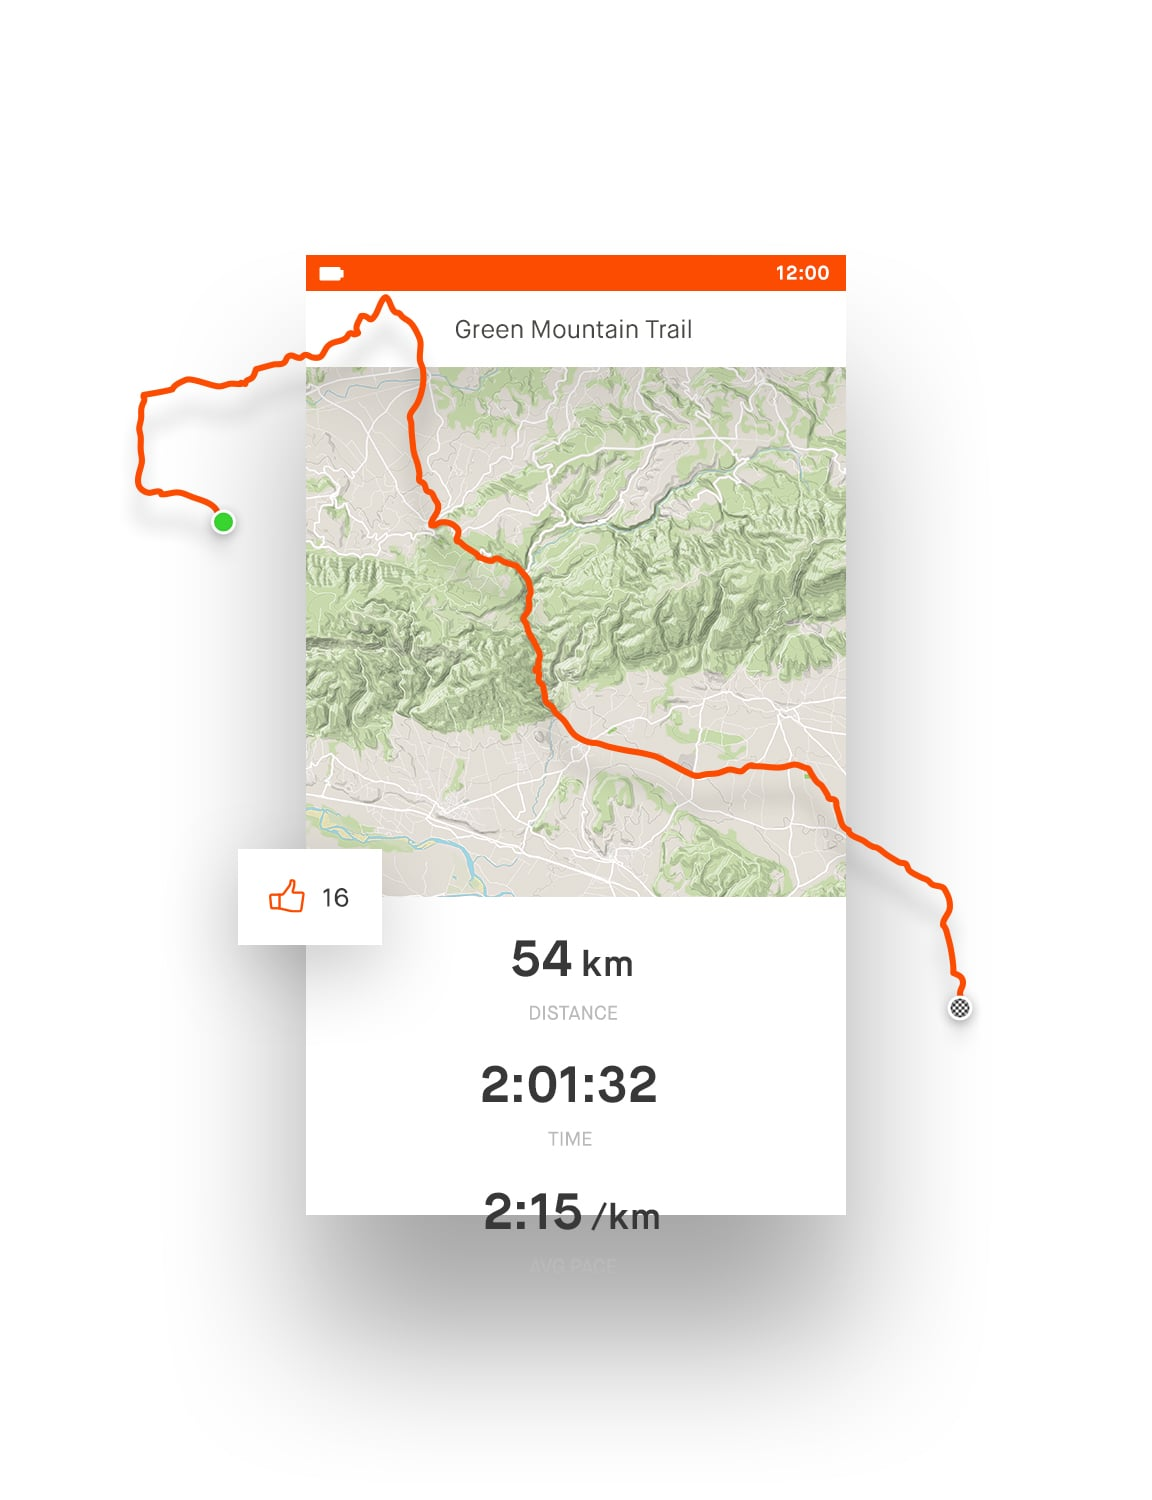 Strava | Run and Cycling Tracking on the Social Network for ... on map my name, map my state, plan my route, map my drives, mapping a route, map out a route trip, map sf 5k route, map my distance, chart my route, map my run, map of my land, map my trip, map my place, map my city,